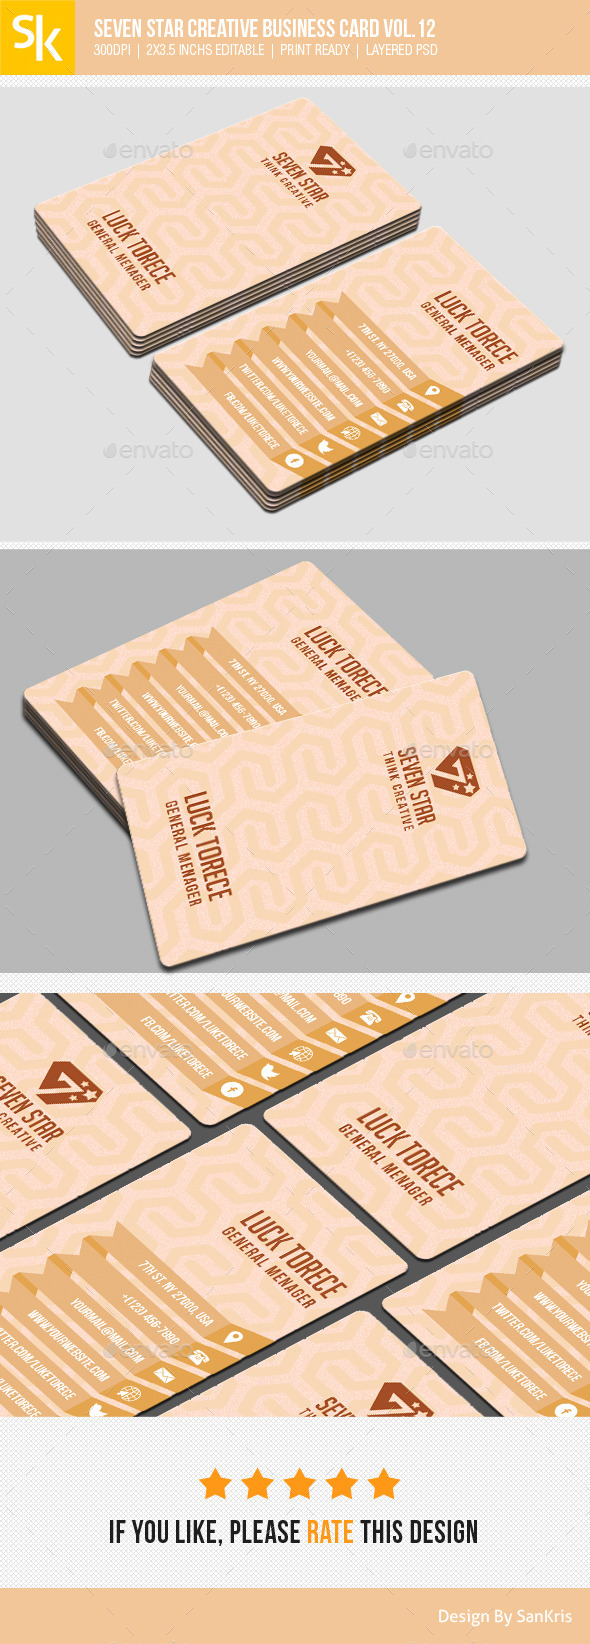 Seven Star Creative Business Card Vol.12 - Retro/Vintage Business Cards